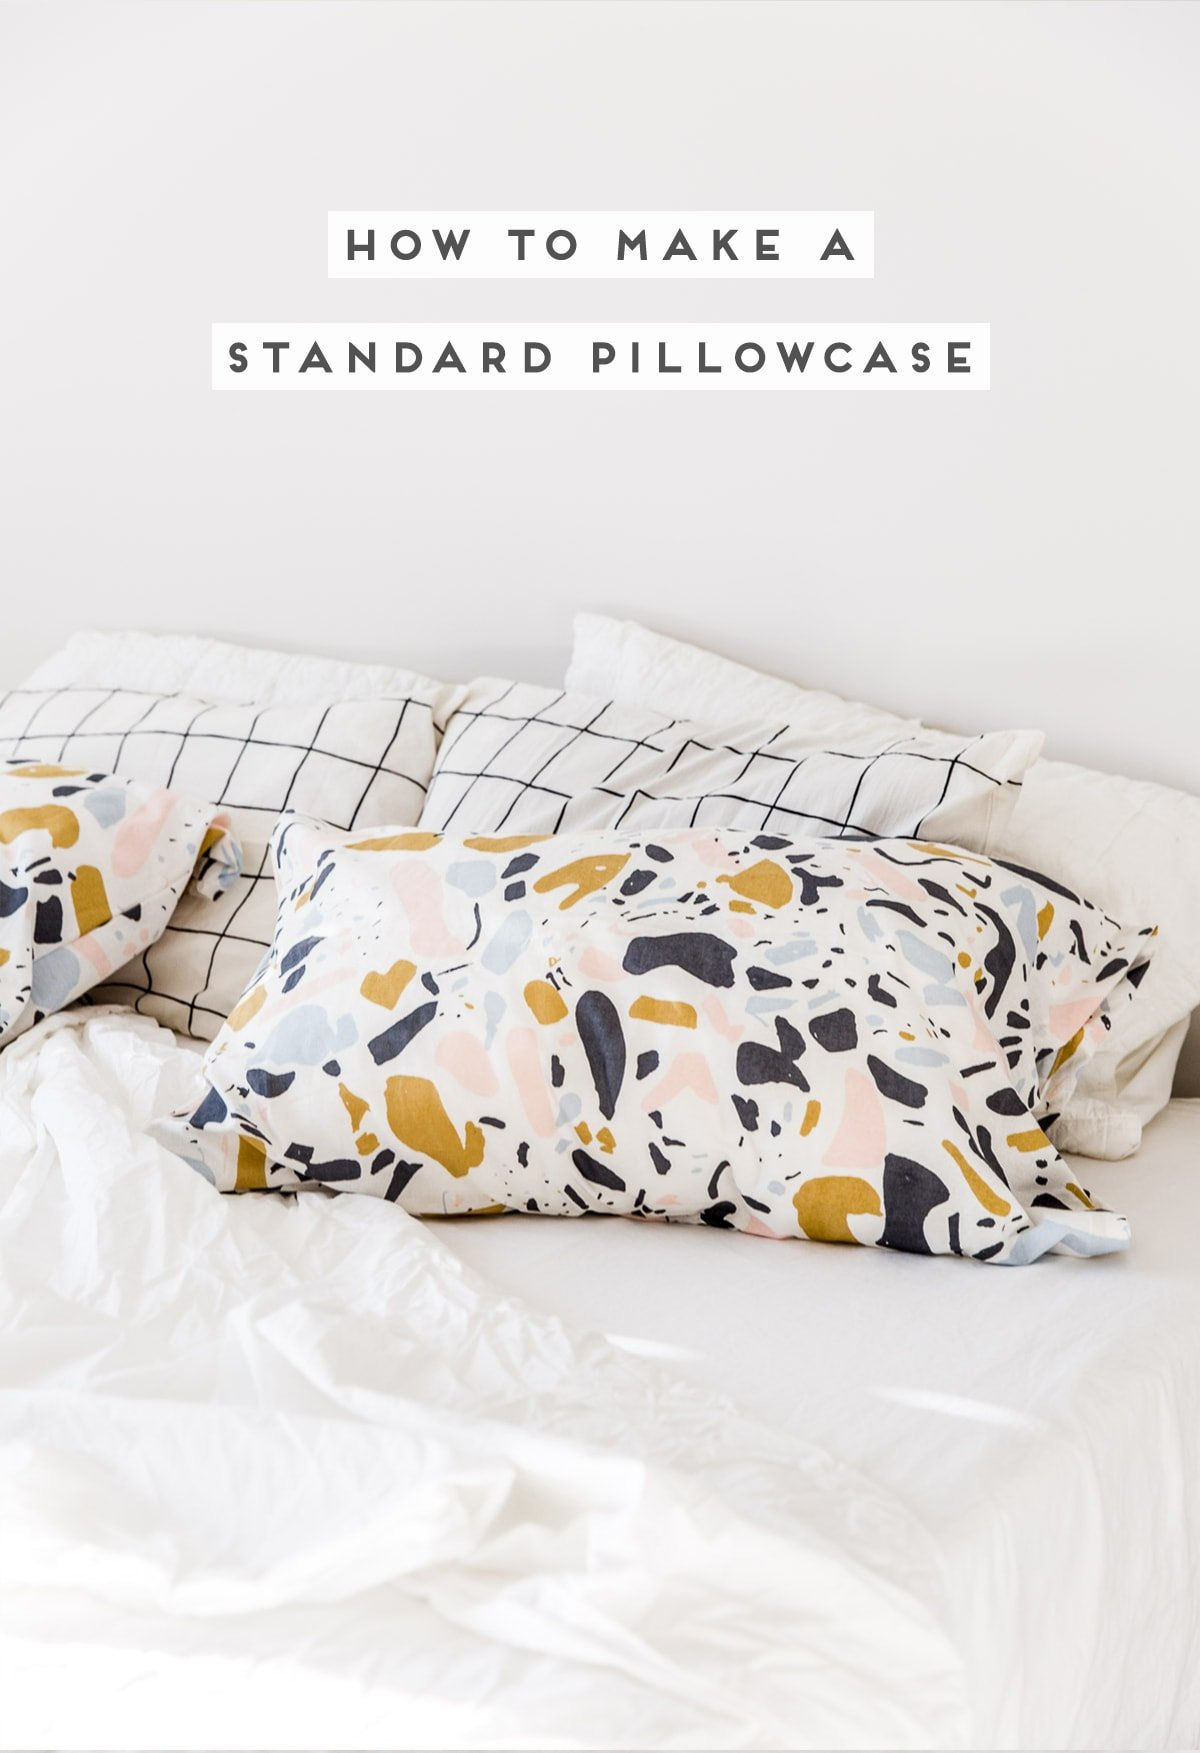 Pattern pillowcases that are handmade, on white bedding.